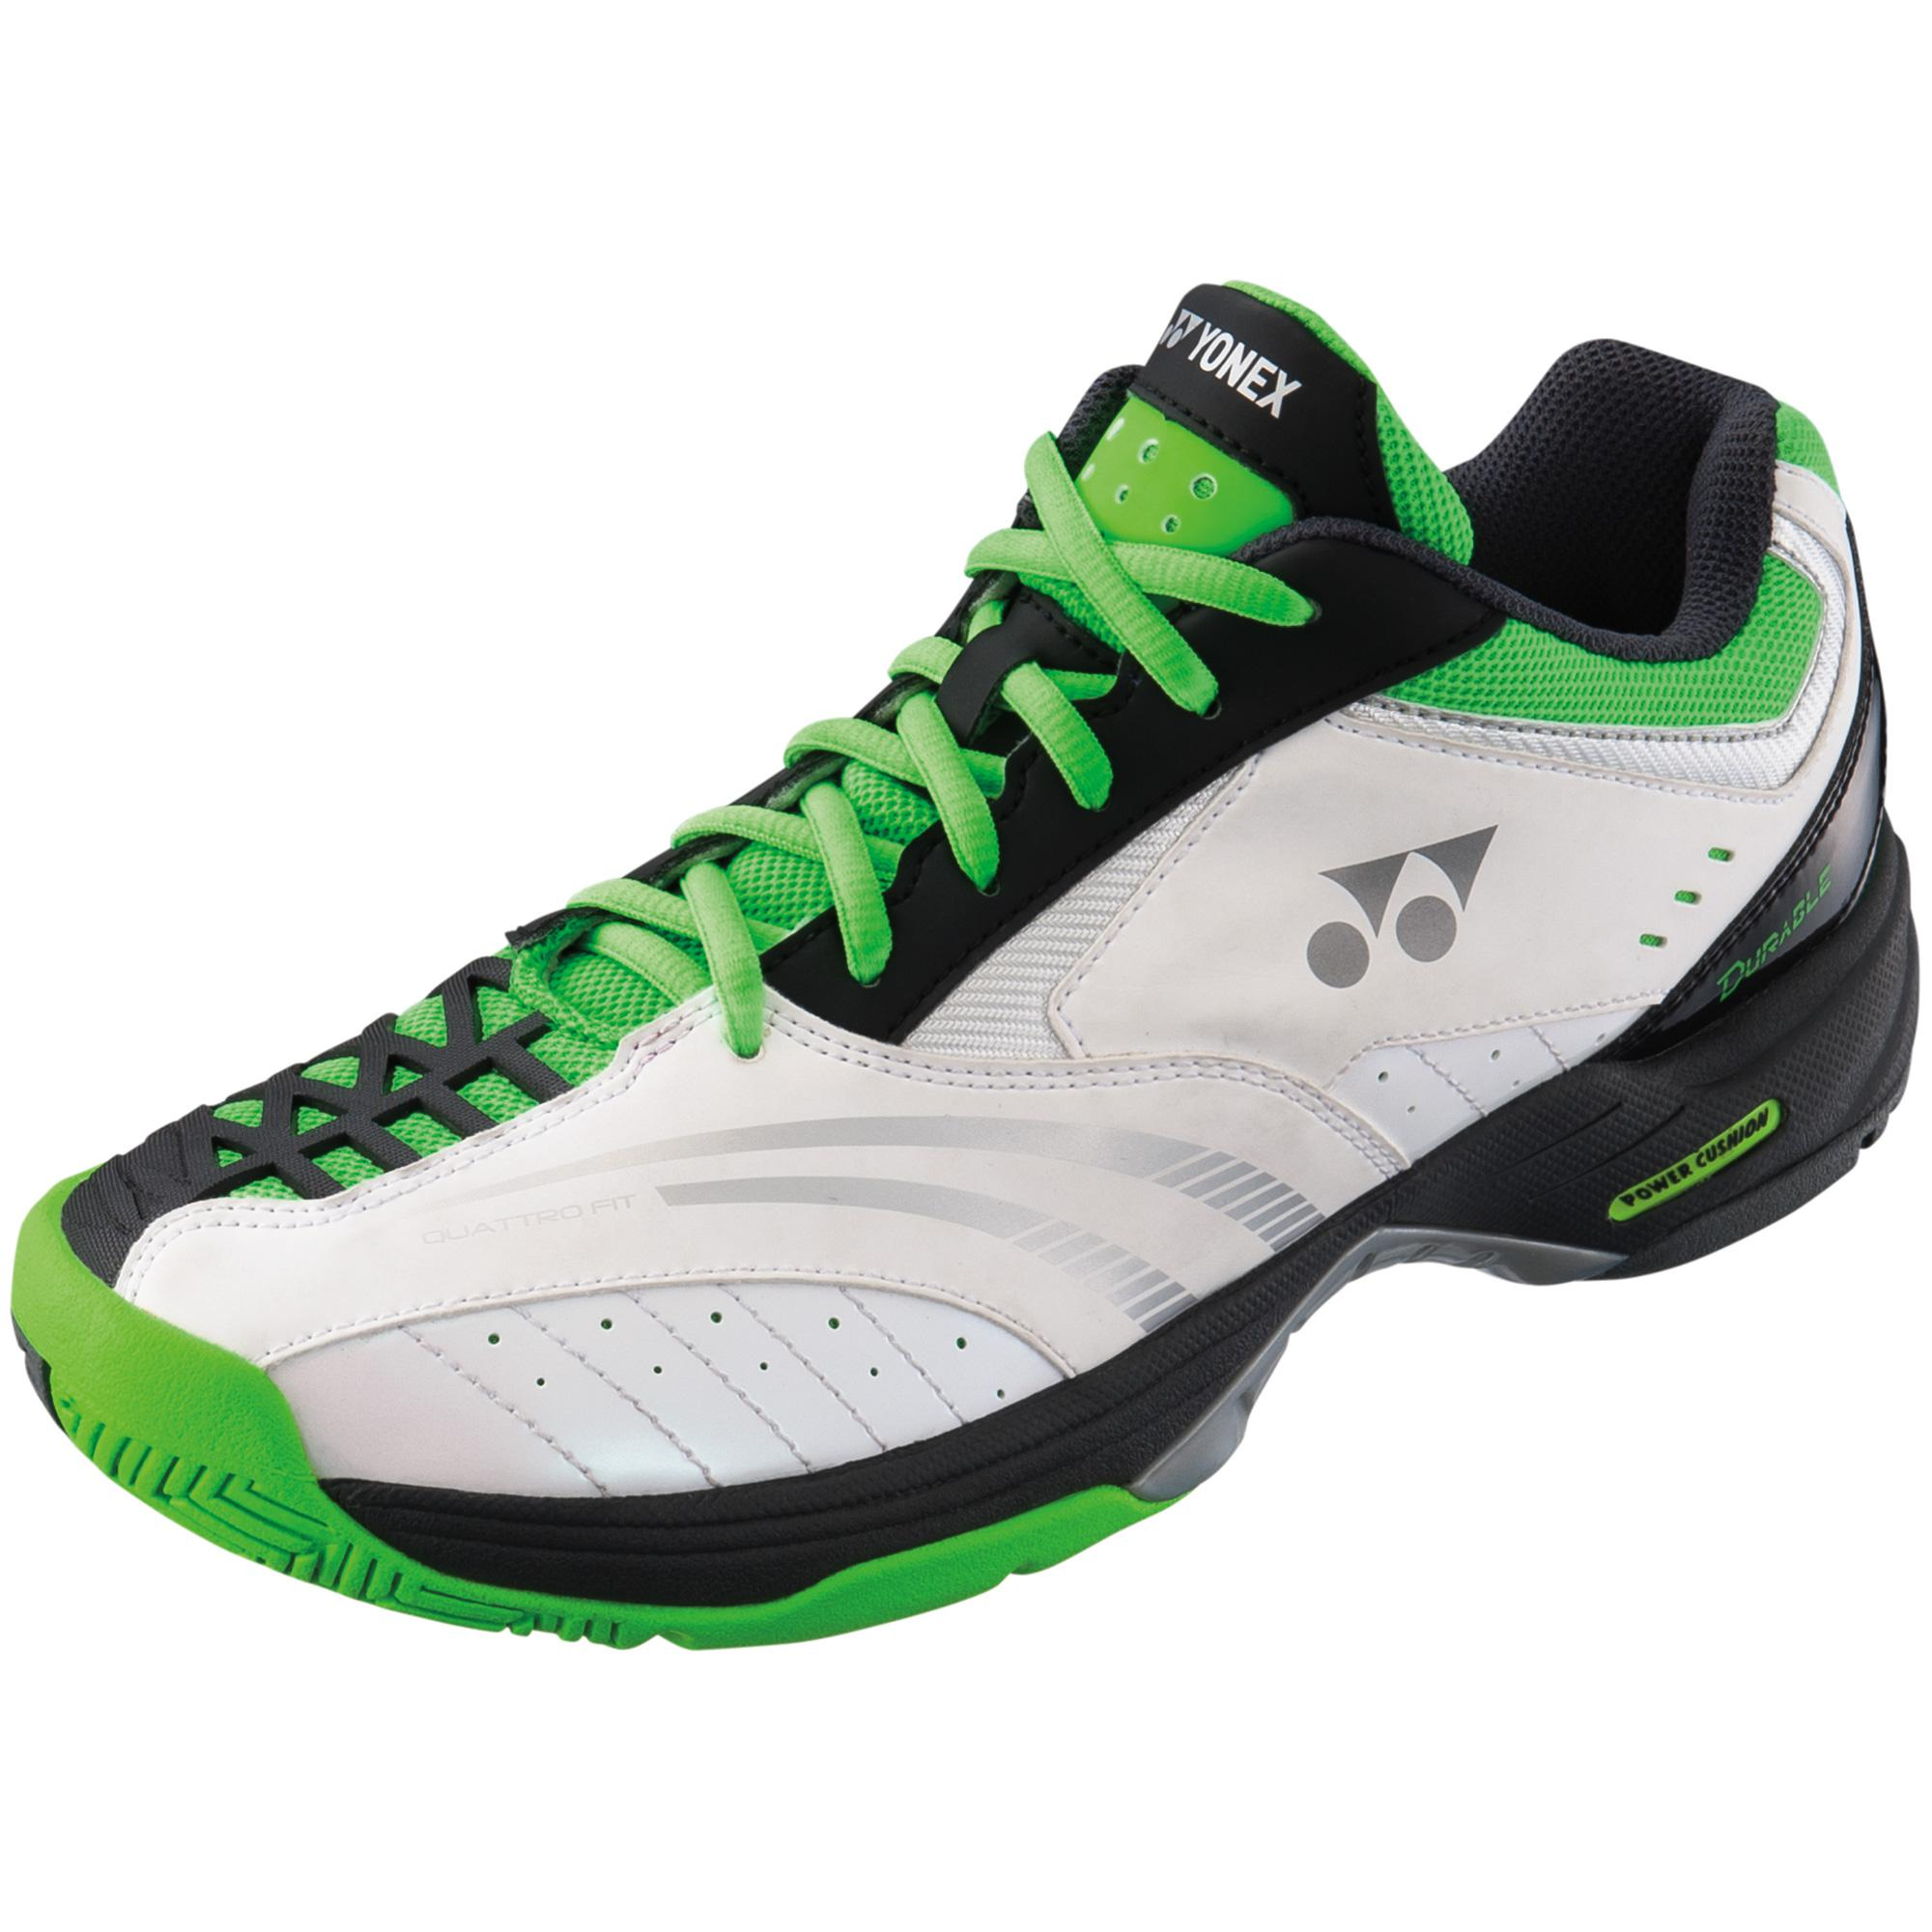 Yonex Mens SHT-DURABLE 2 All-Court Tennis Shoes - White/Green ...